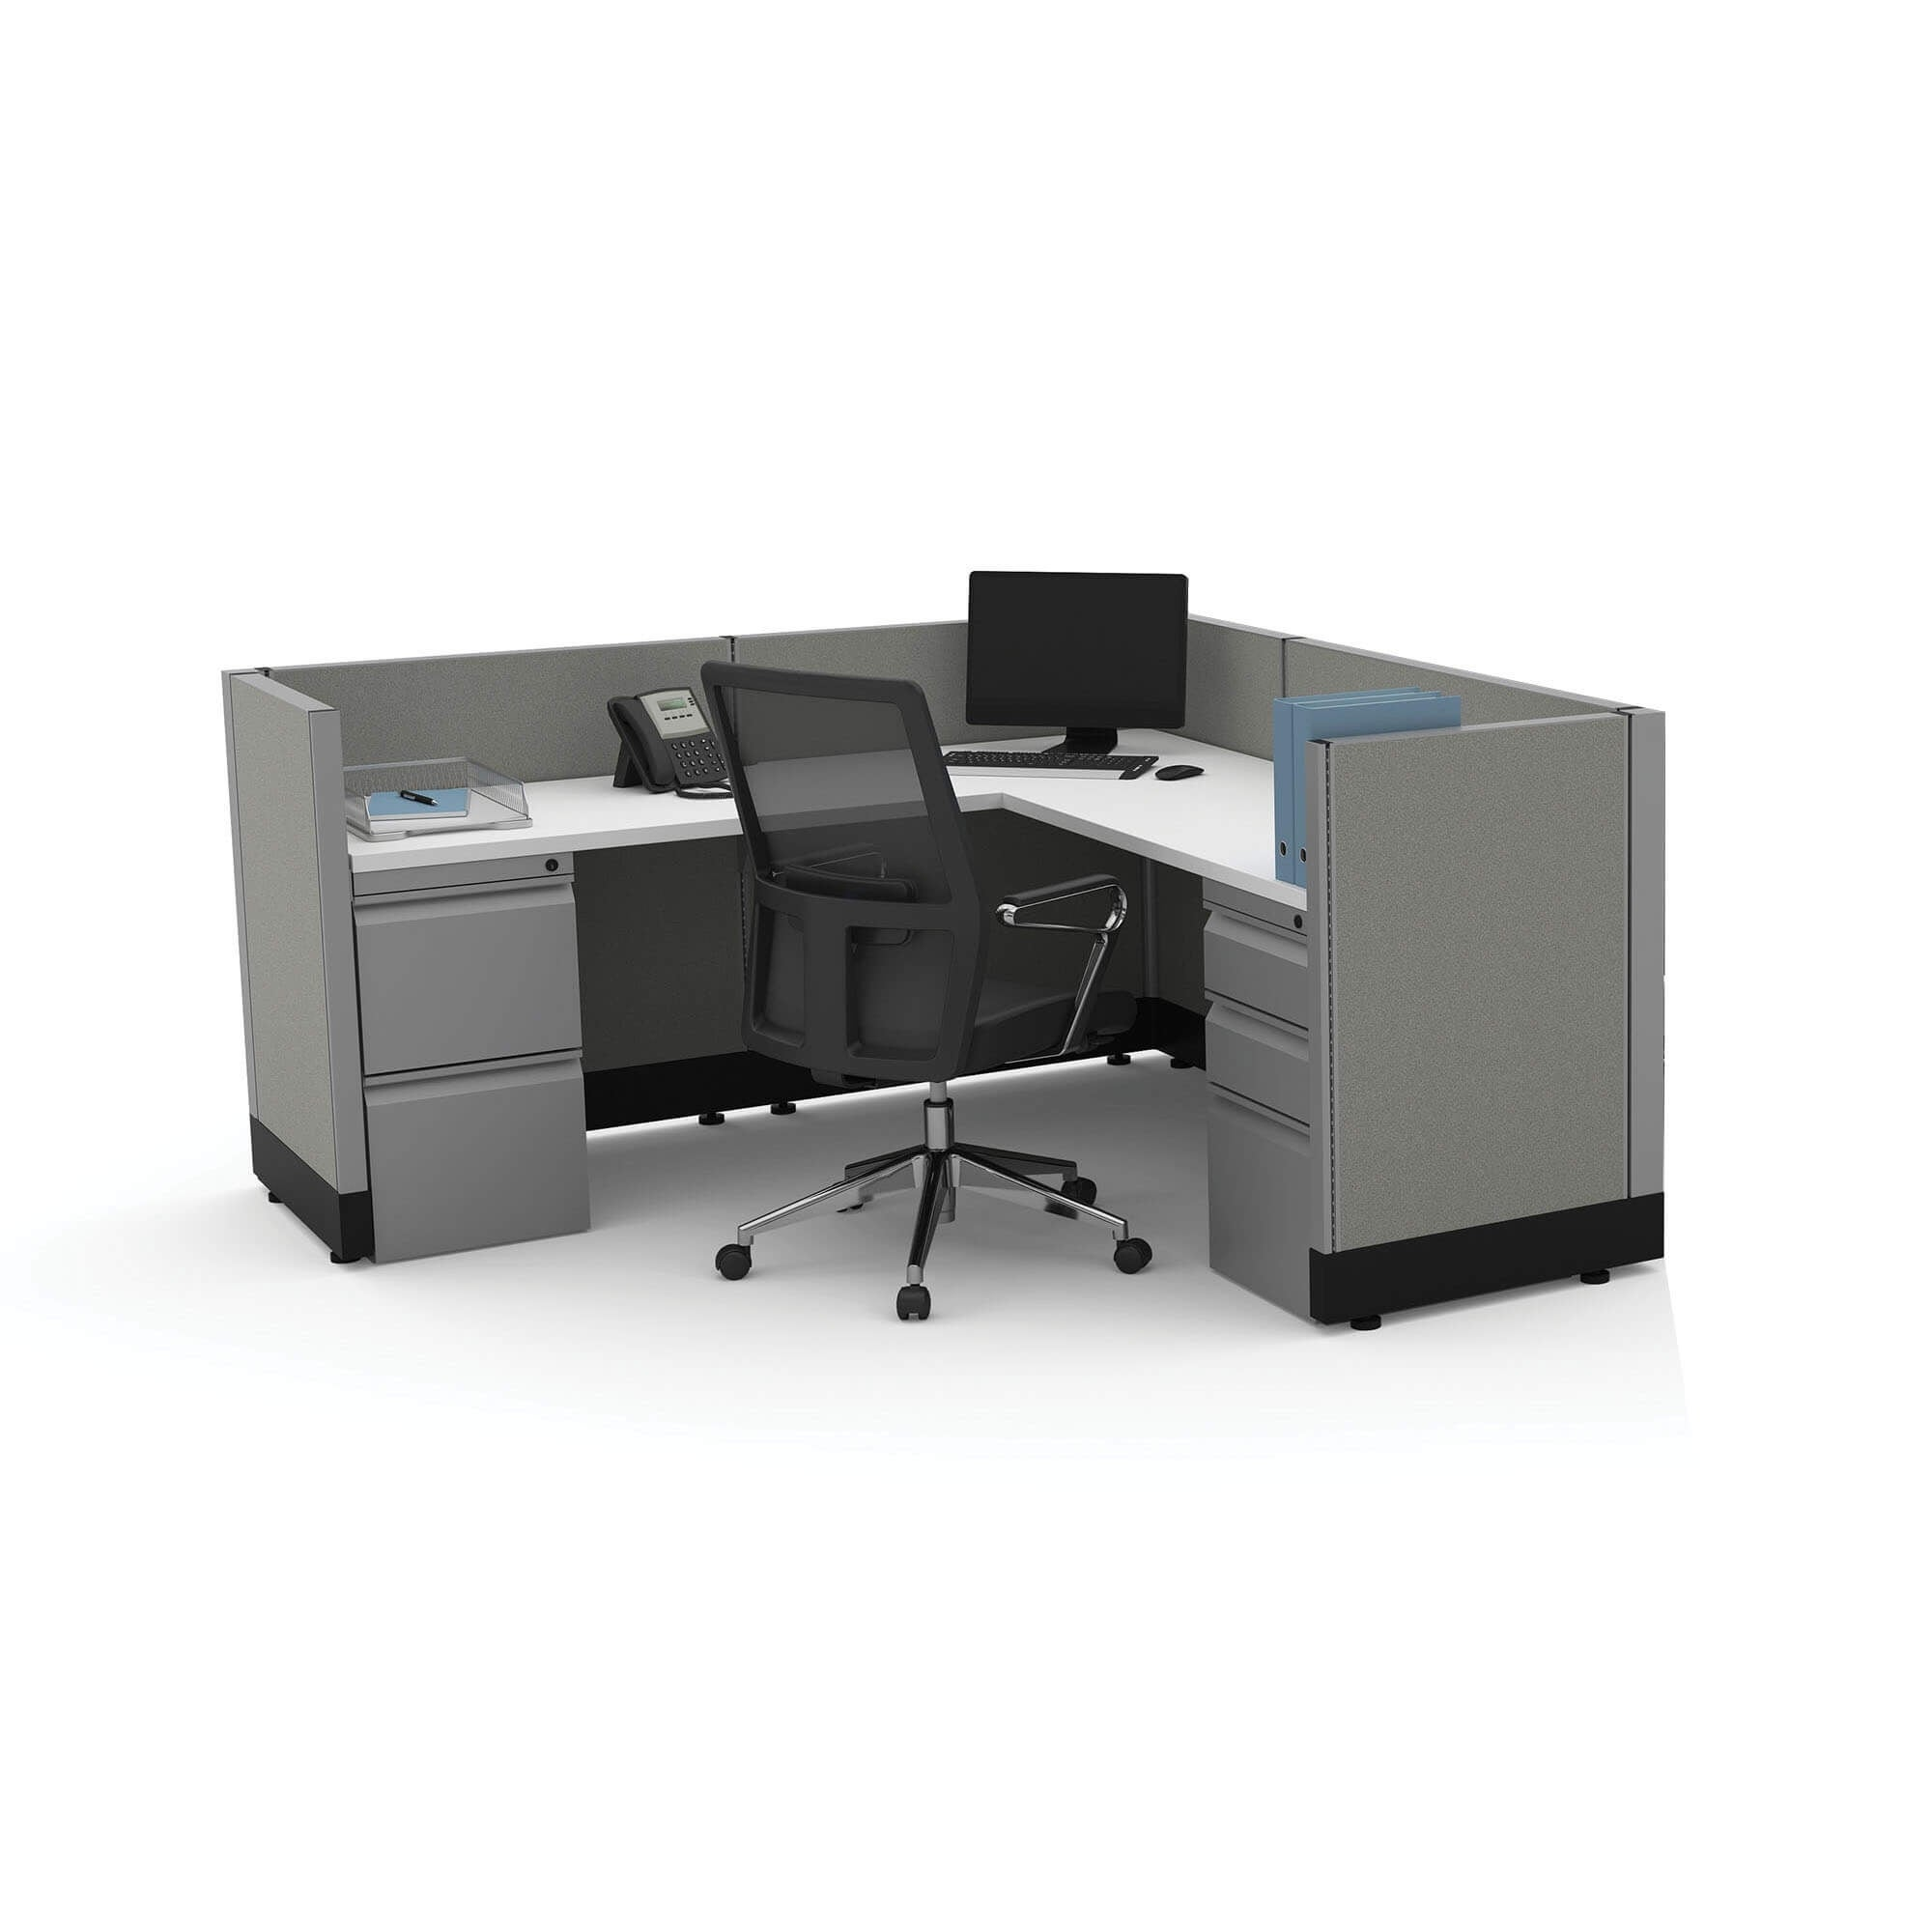 System Furniture 39H Powered (5x5 - White Desk Silver Paint - Assembled)